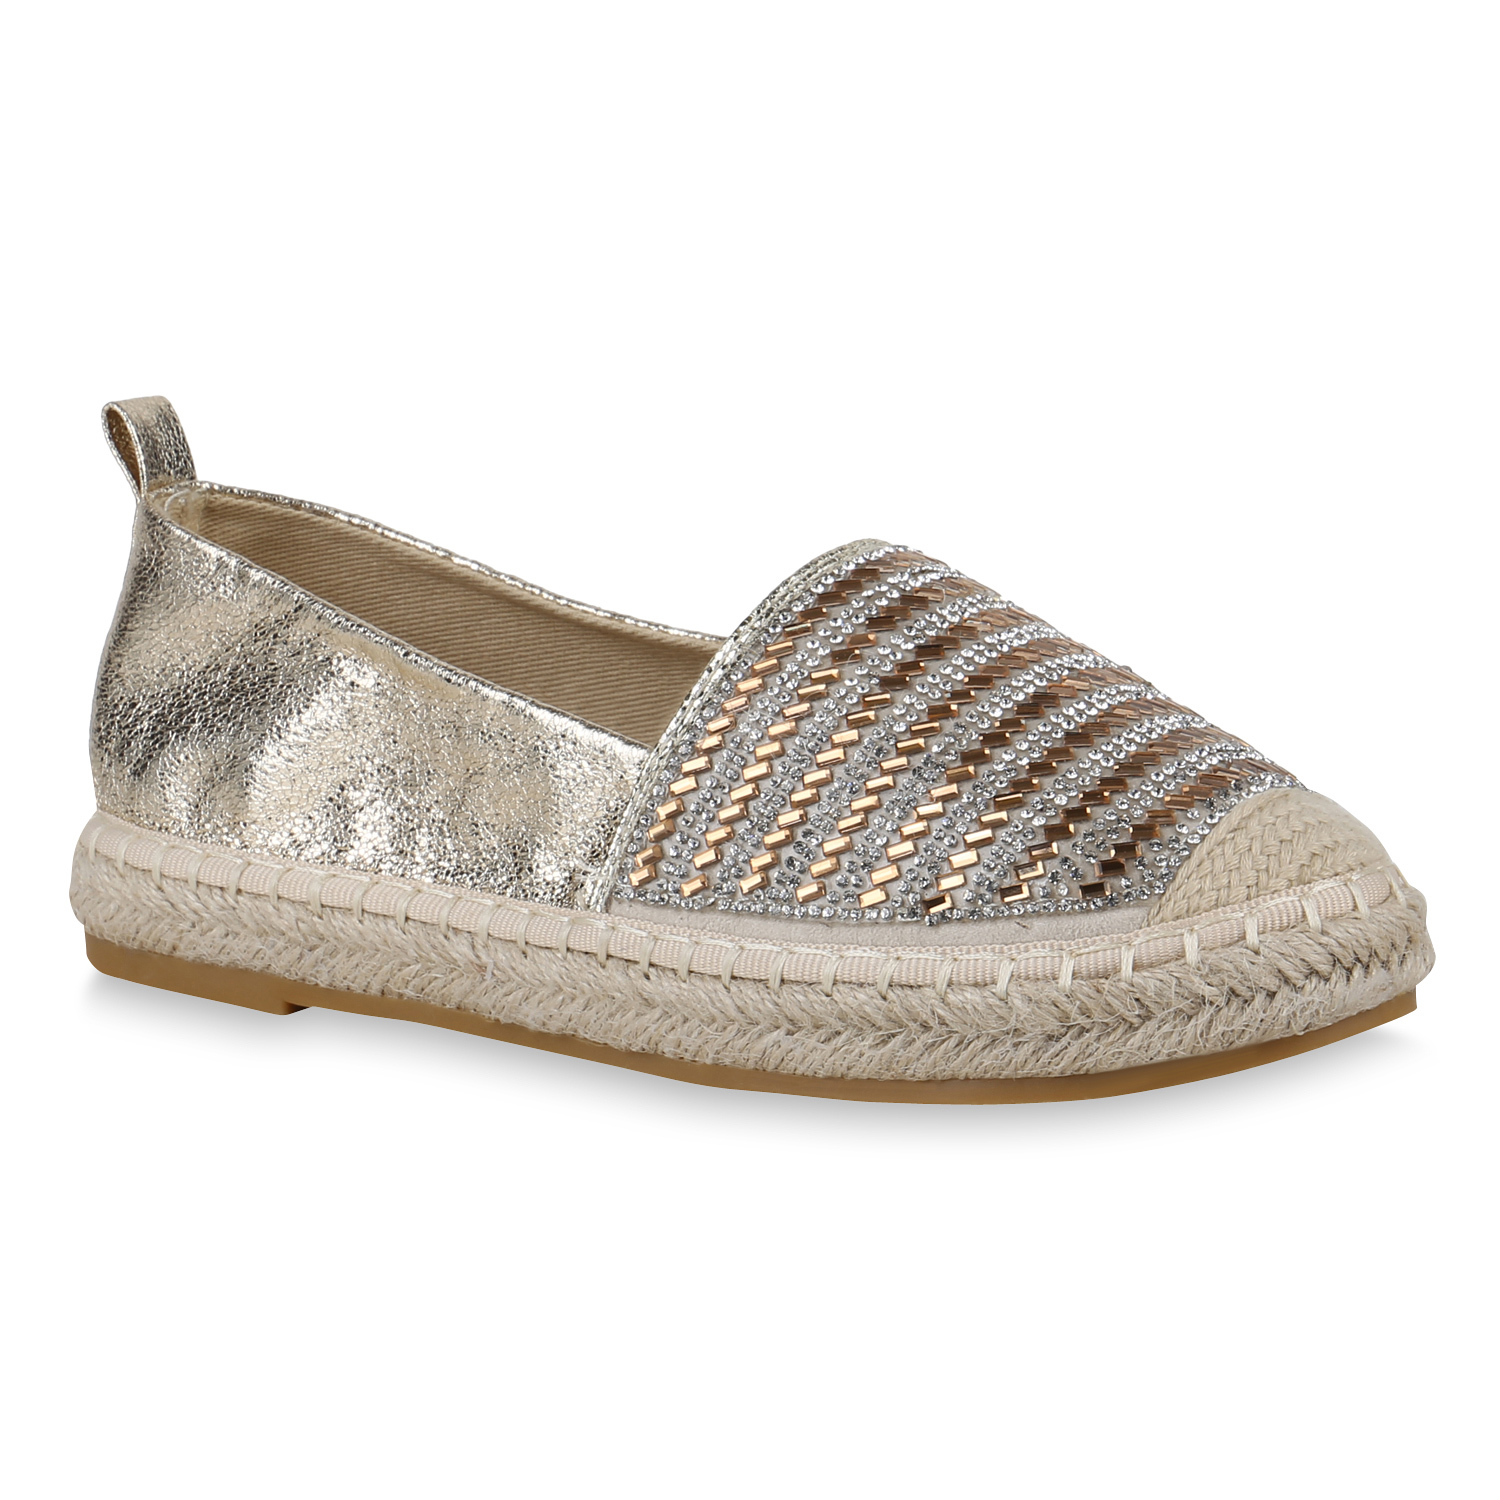 Damen Slippers Espadrilles - Gold